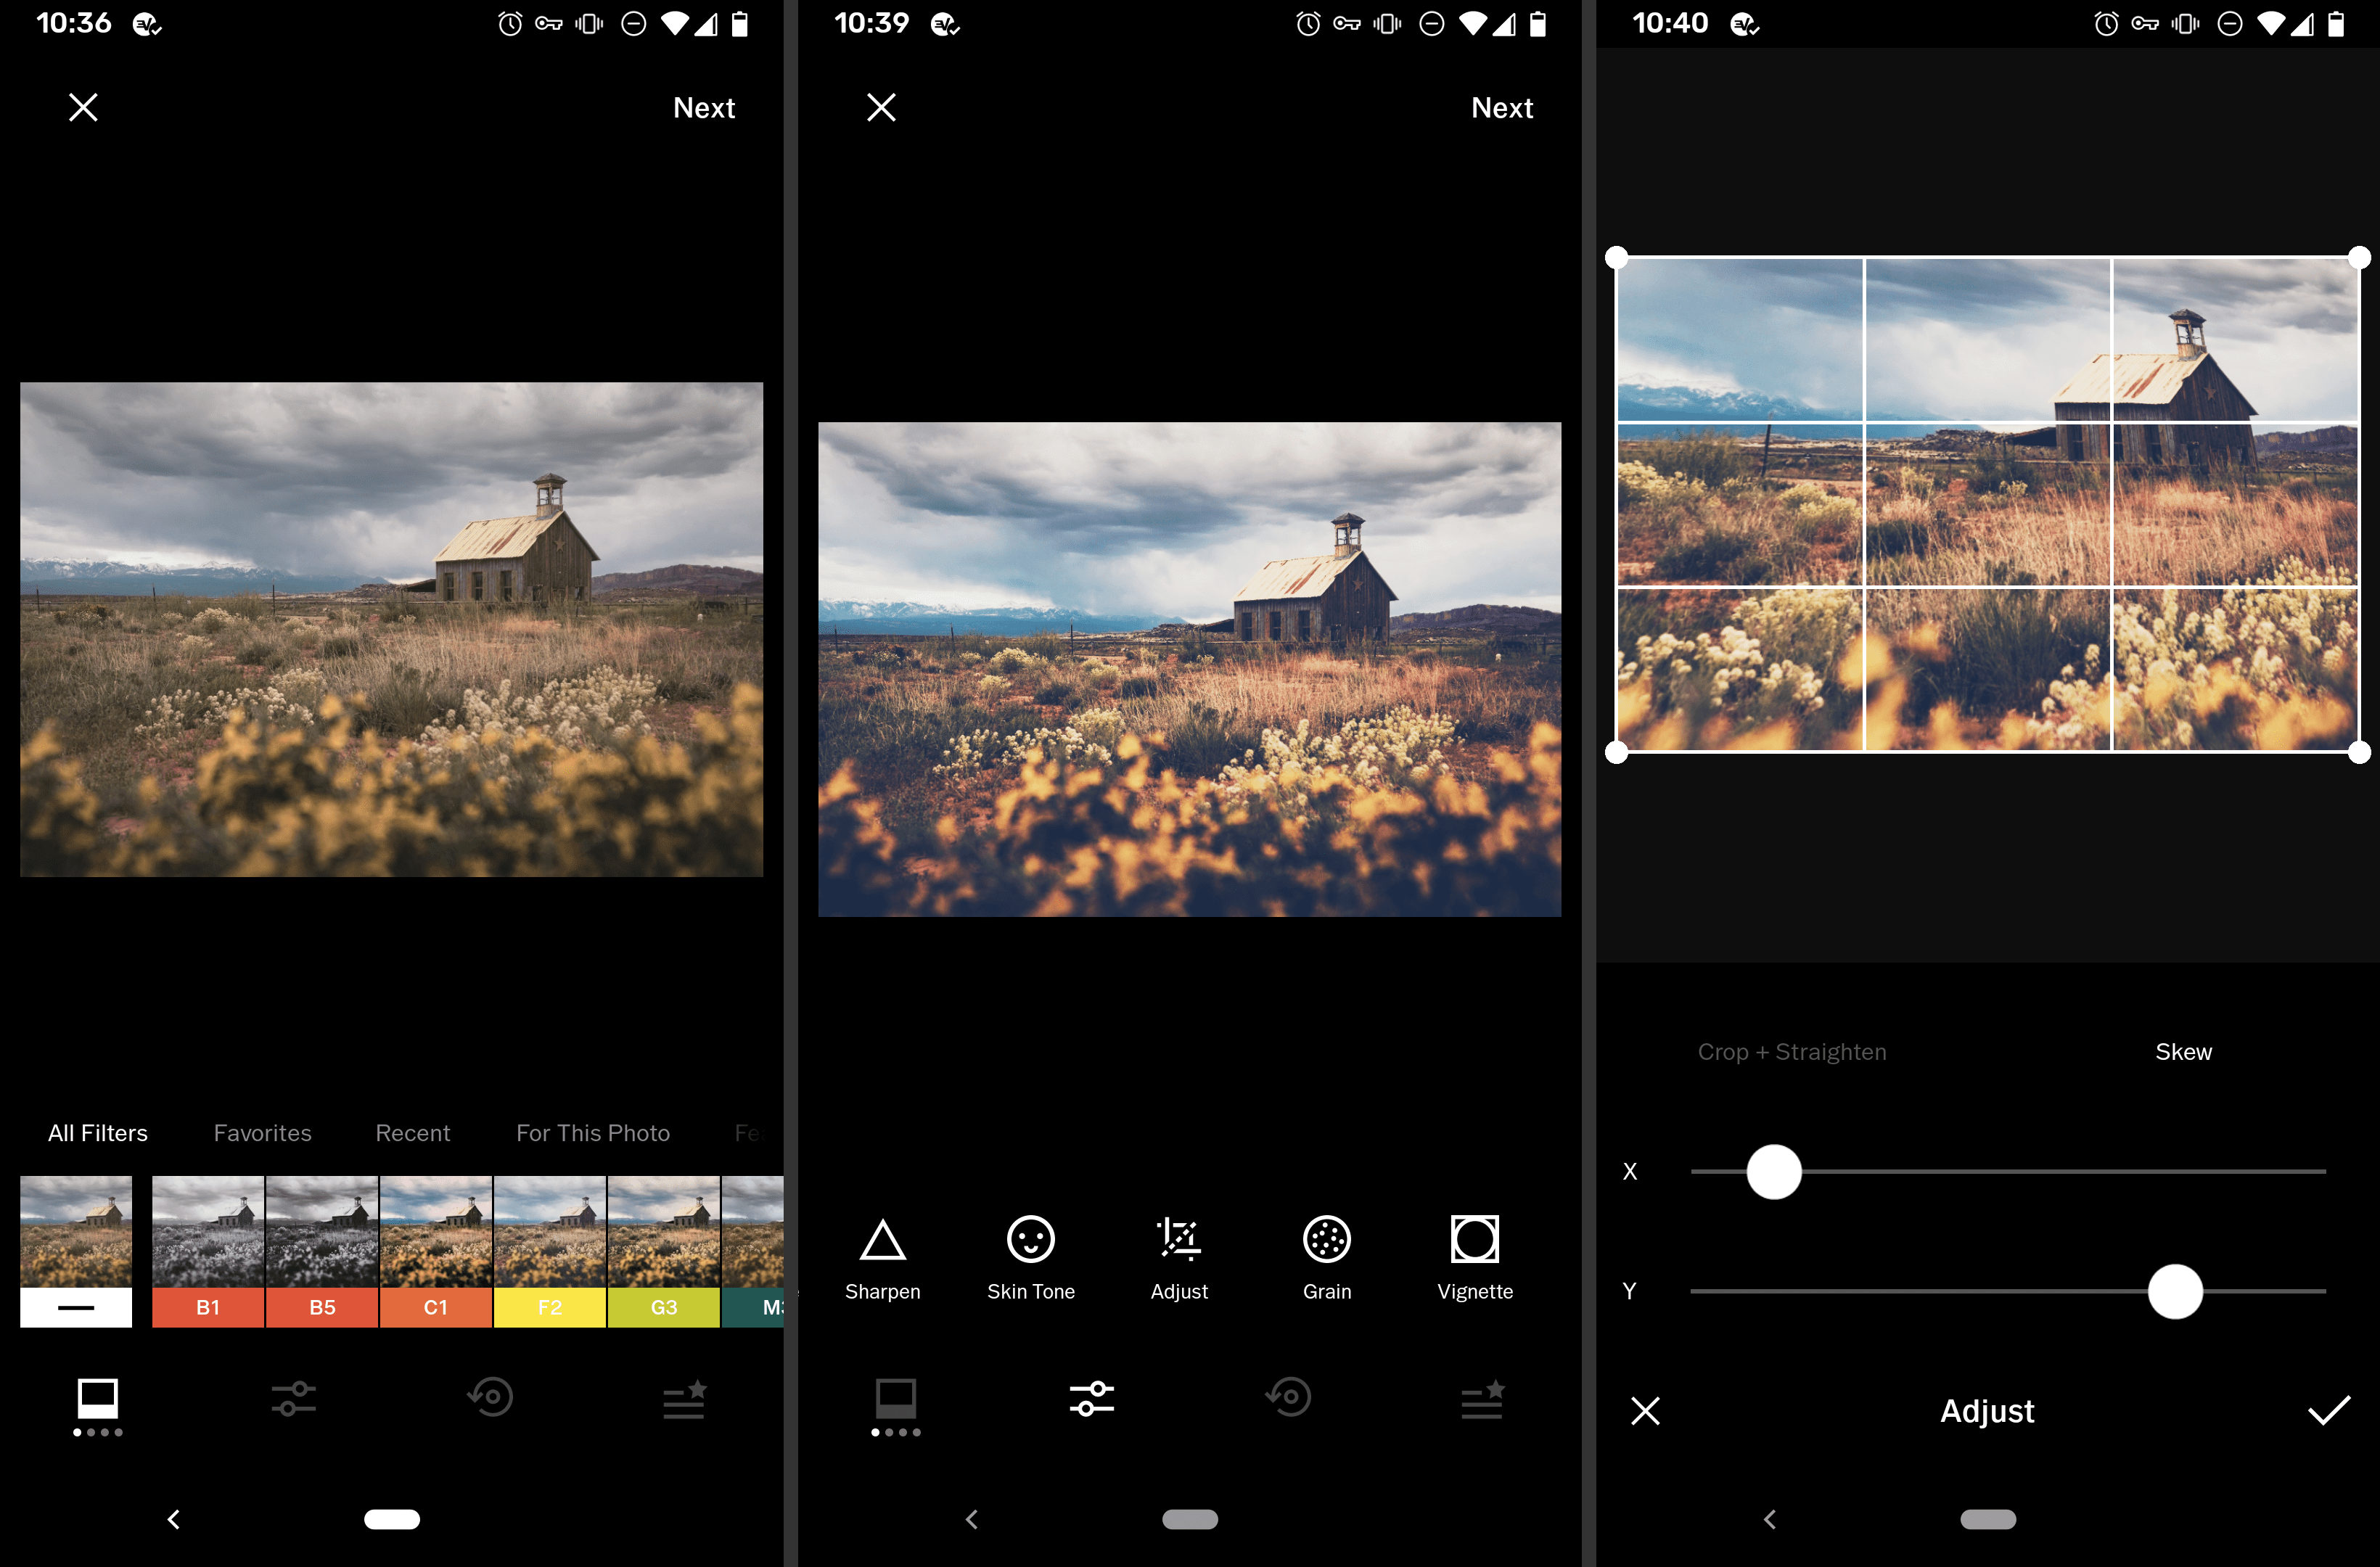 Screenshots of the VSCO free Android image editor app